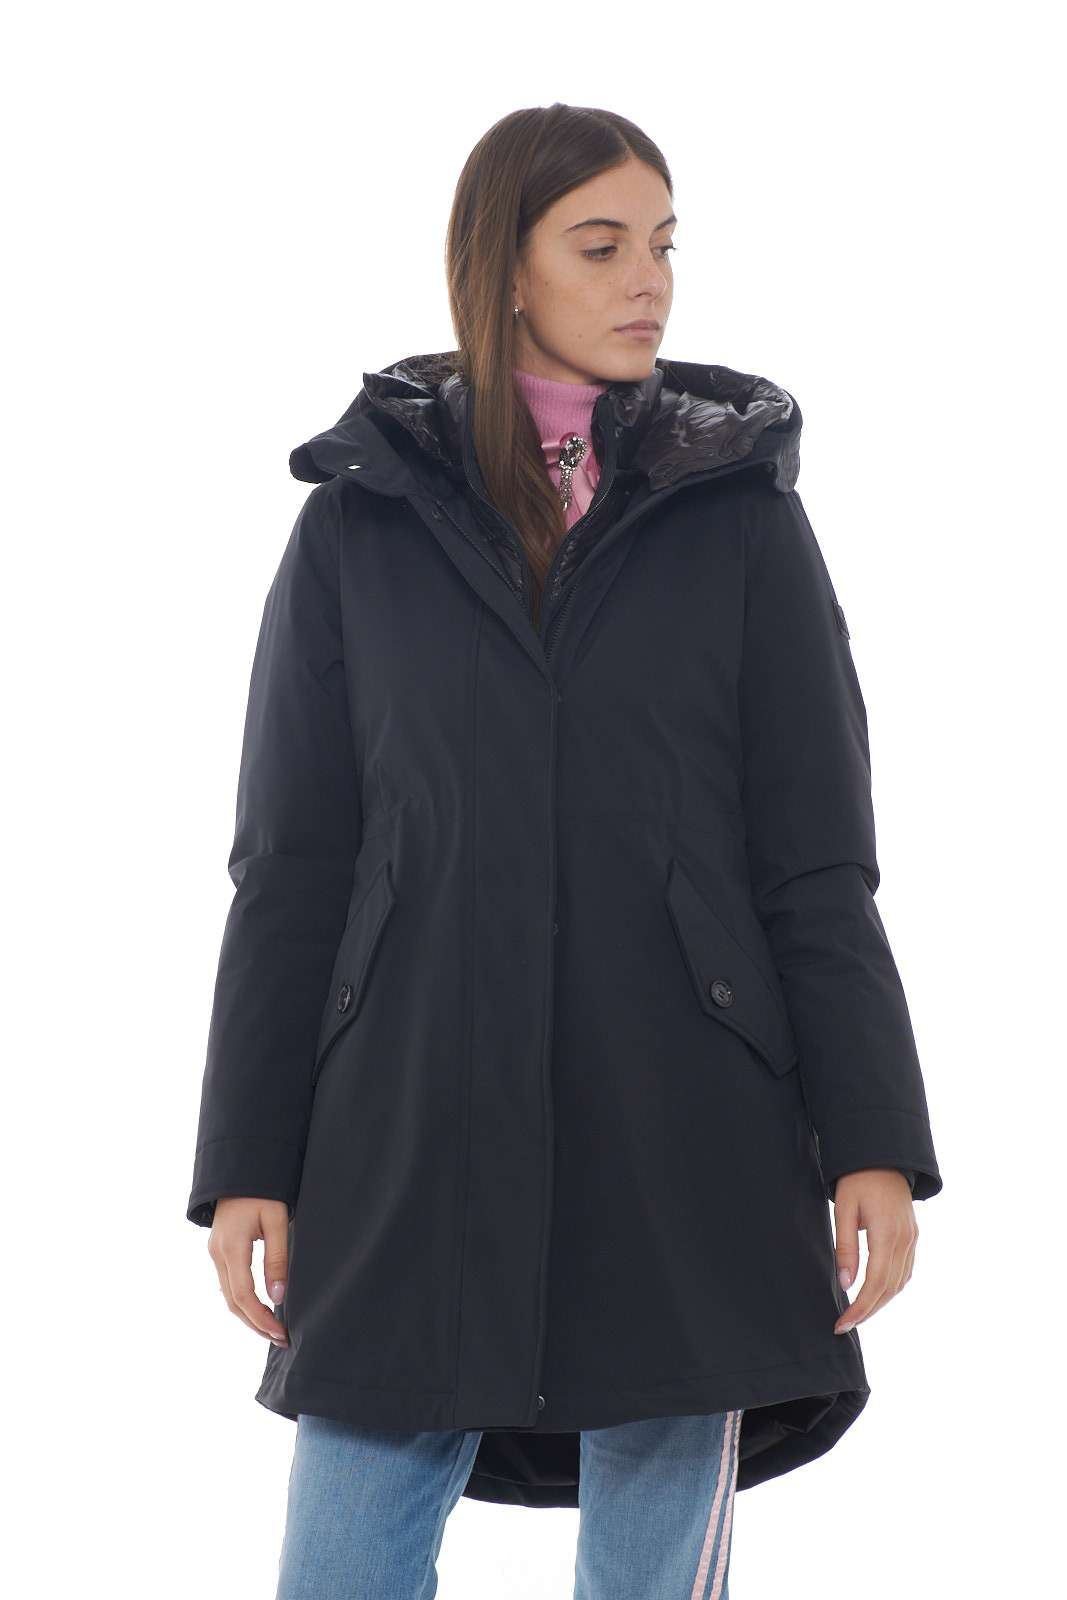 https://www.parmax.com/media/catalog/product/a/i/AI-outlet_parmax-parka-donna-Woolrich-WWCPS2785-A.jpg